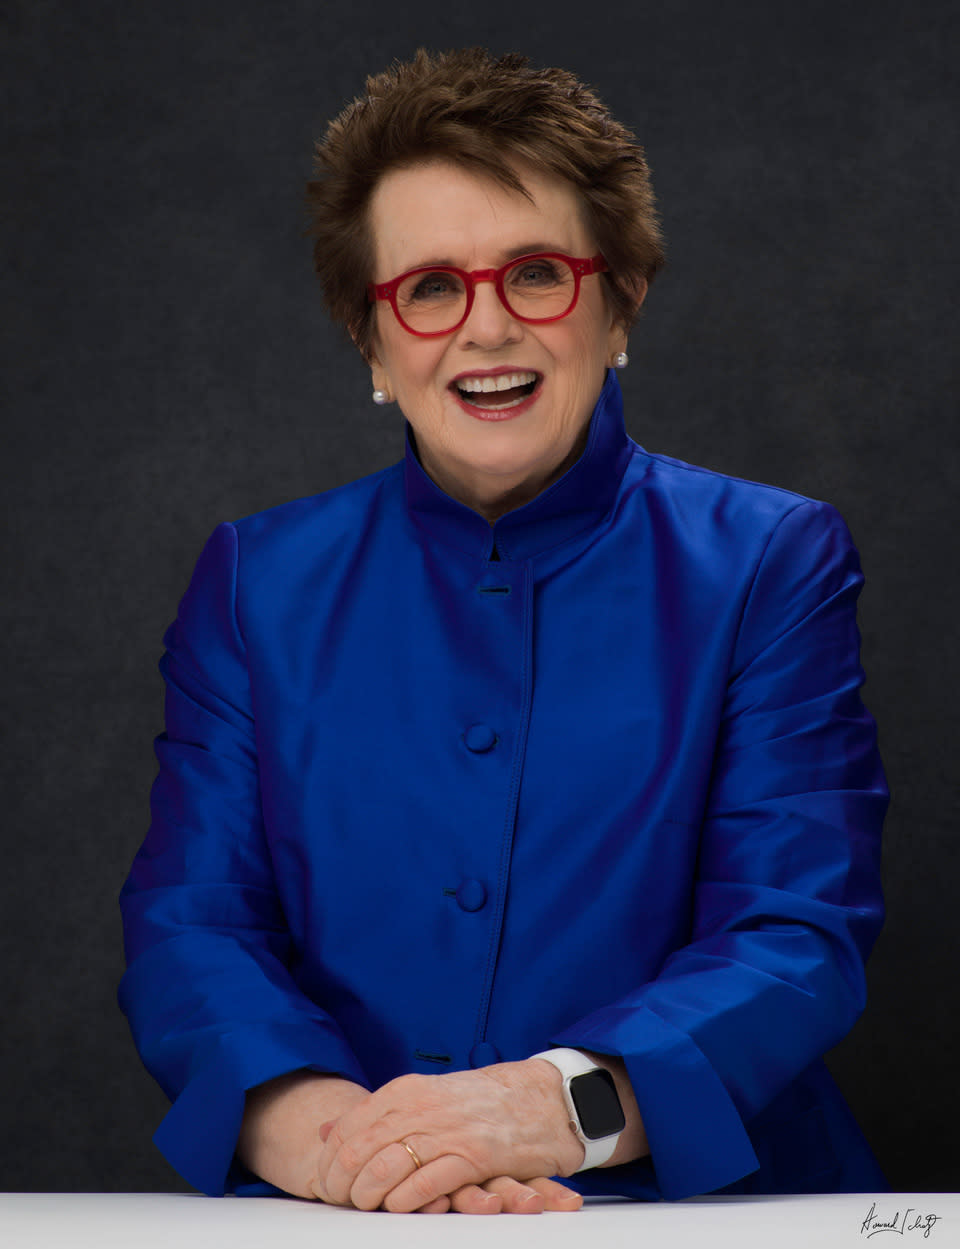 Billie Jean King teams up with Jane Walker by Johnnie Walker for First Women campaign celebrating and inspiring women breaking boundaries.